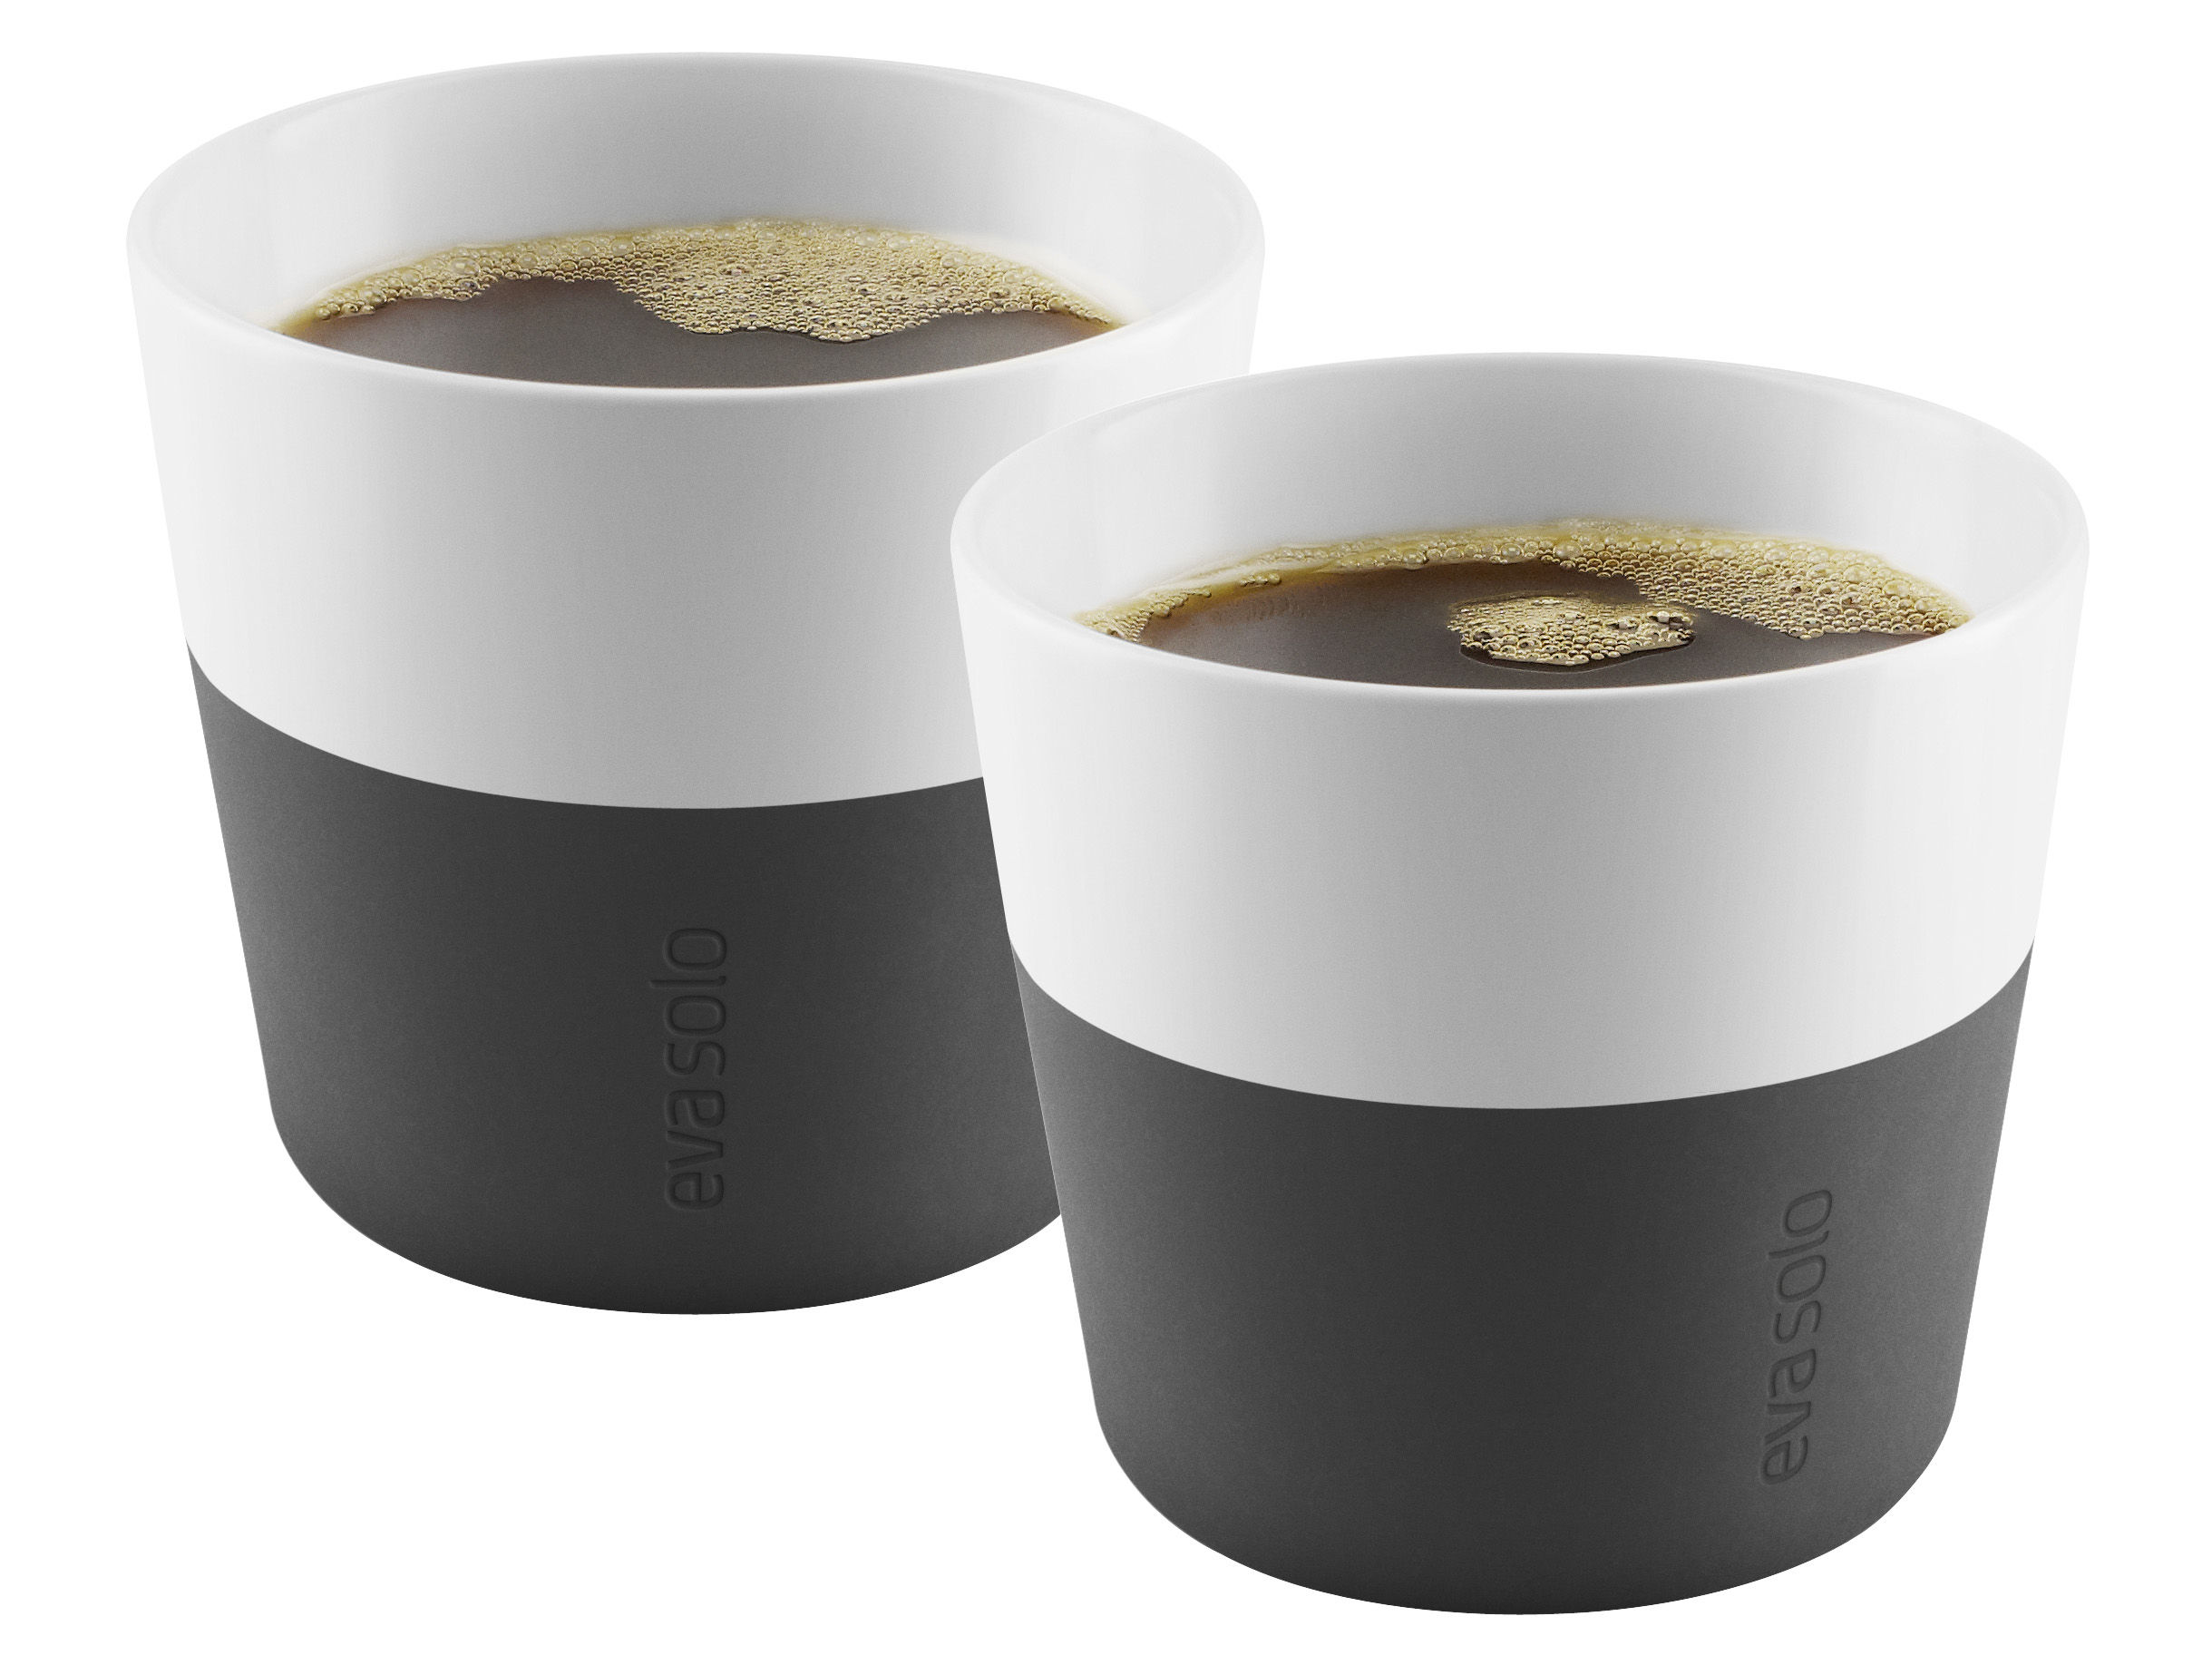 Tableware - Coffee Mugs & Tea Cups - Lungo Cup - Set of 2 - 230 ml by Eva Solo - White / Carbon black silicone - China, Silicone